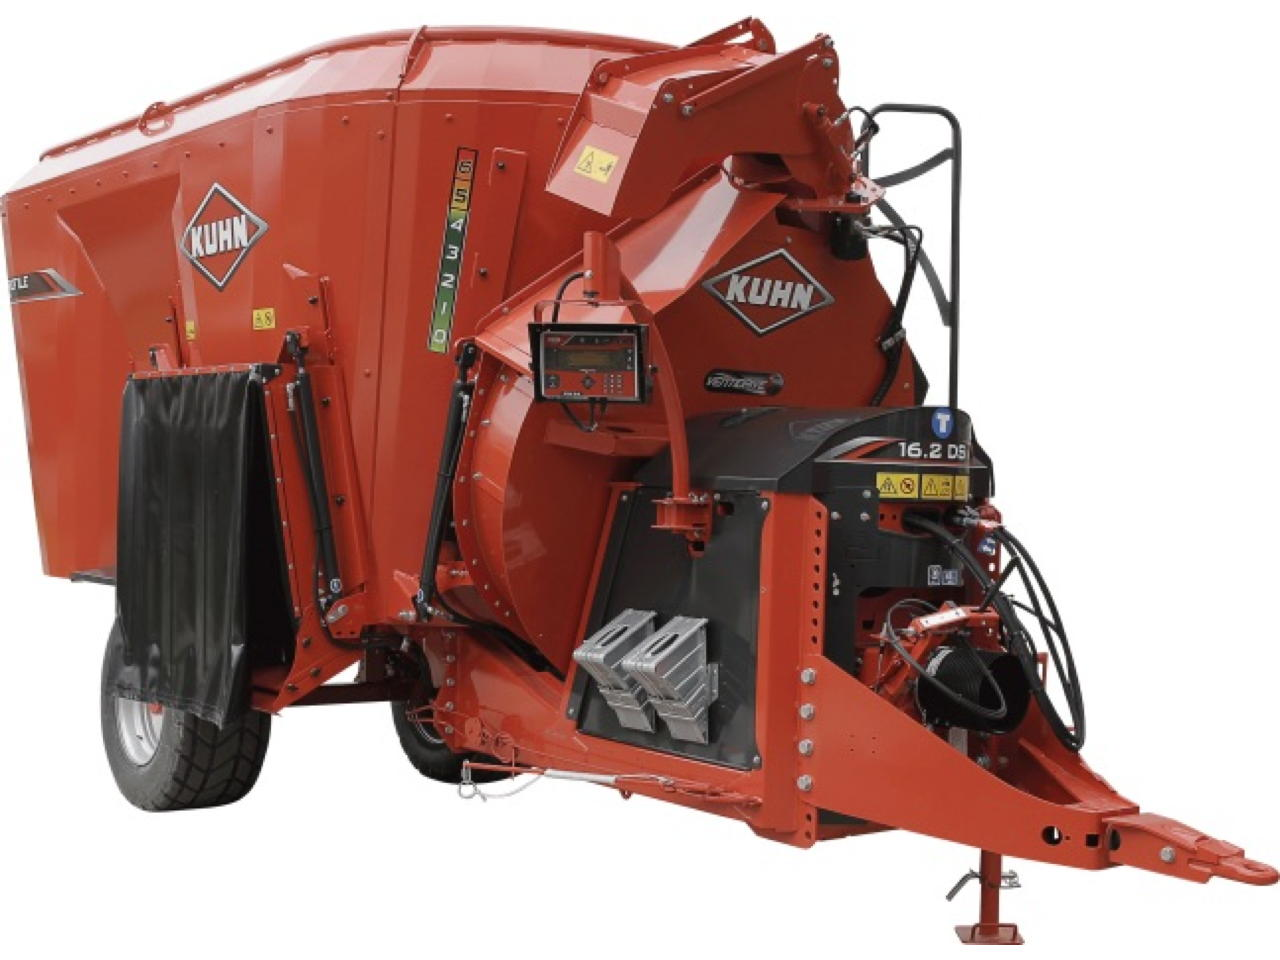 Kuhn Profile Plus 2 DS Profile Plus 18.2 DS